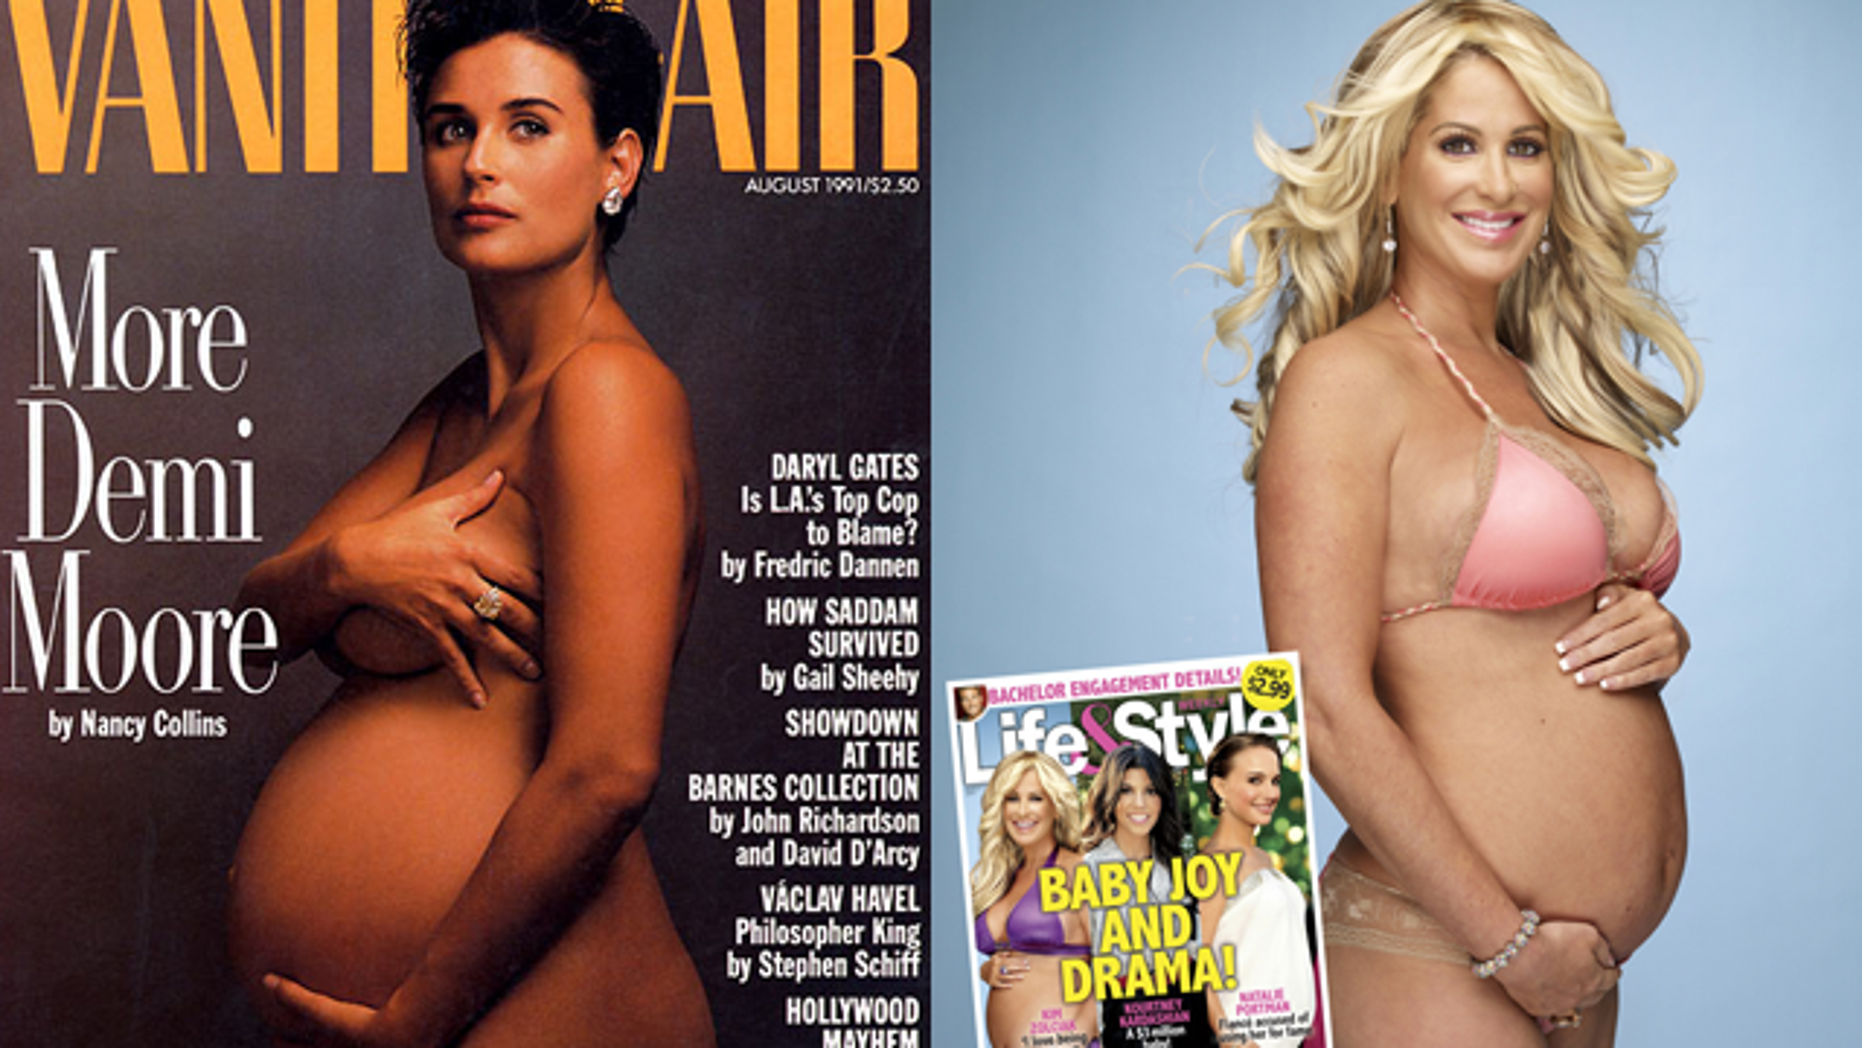 We have gond from this, to this. (Vanity Fair / Life & Style.)